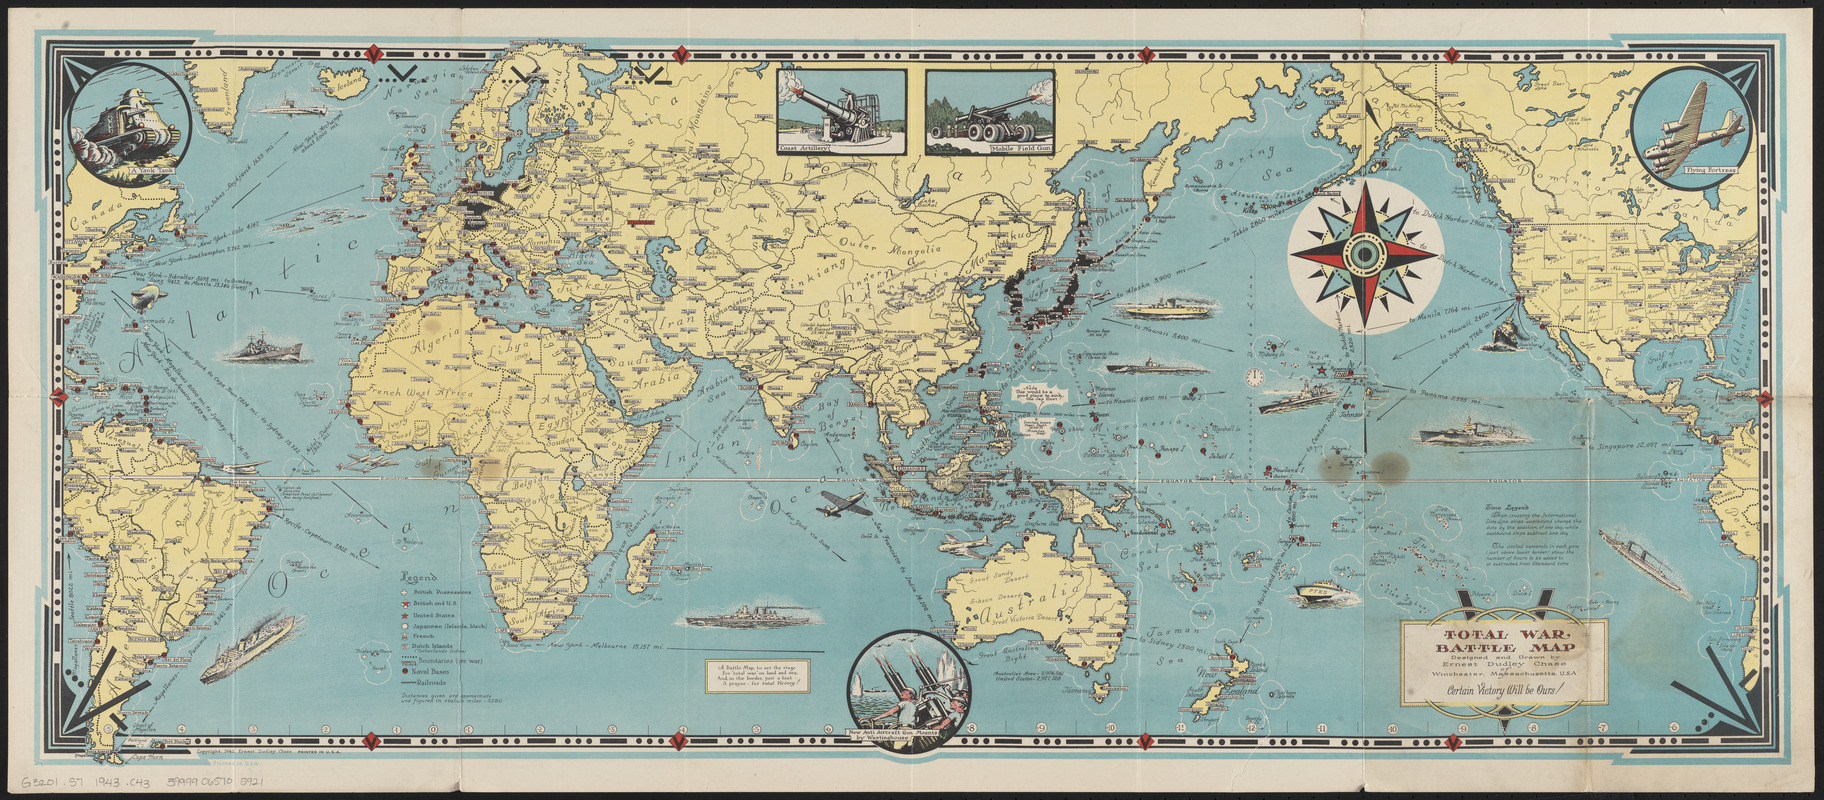 Invasion and total war victory maps